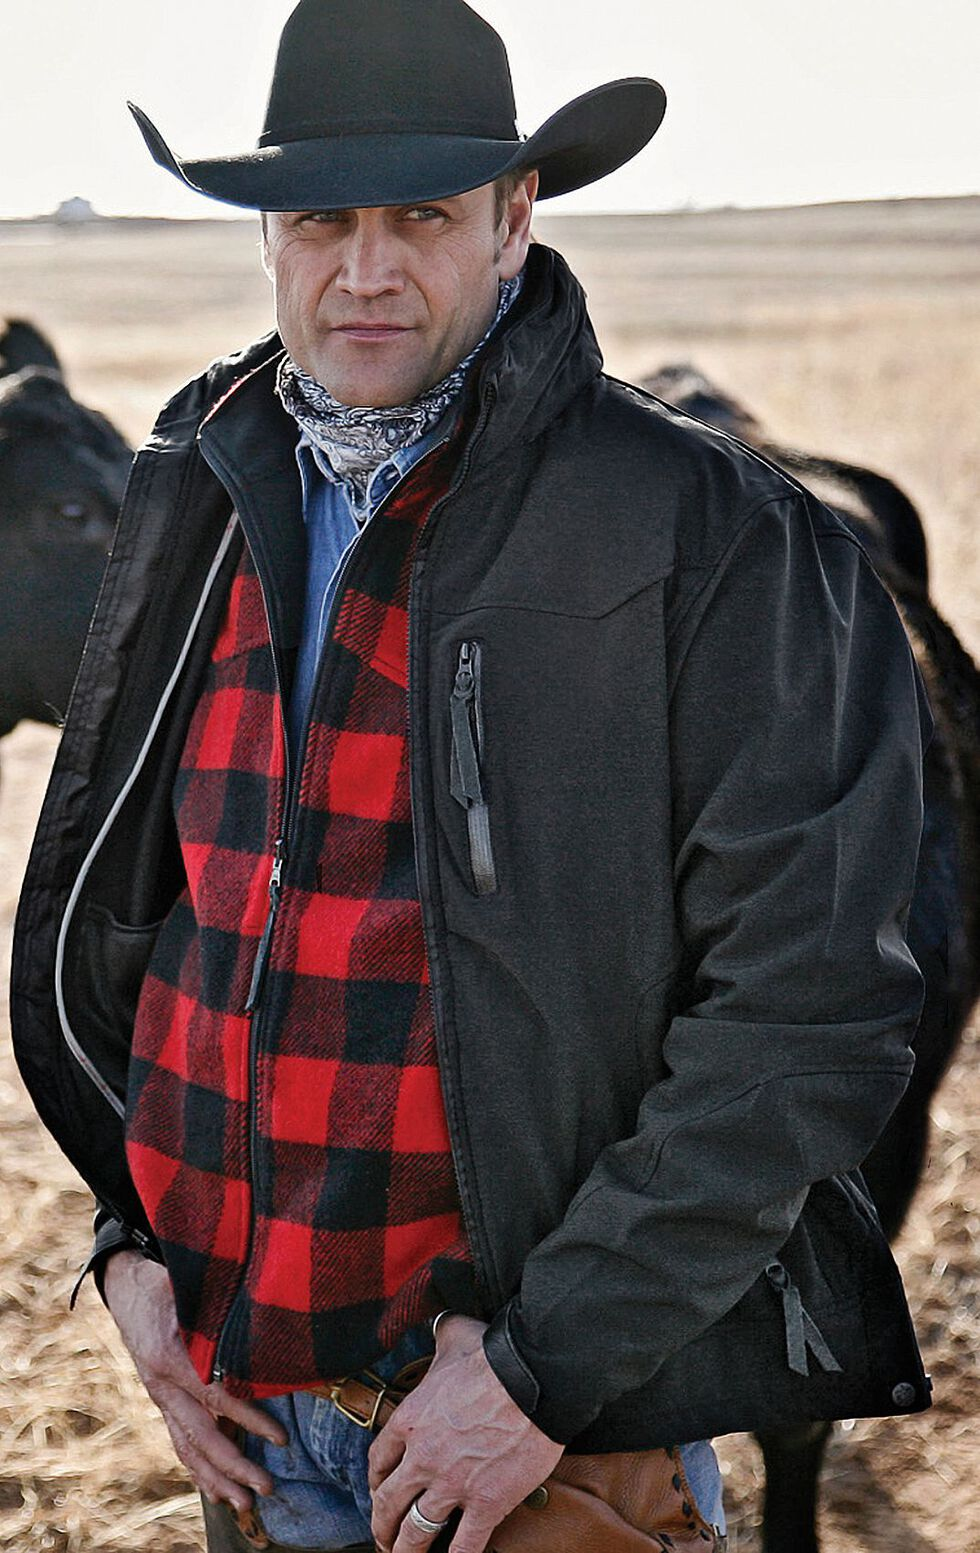 STS Ranchwear Men's Young Gun Black Jacket - Big & Tall - 4XL, Black, hi-res